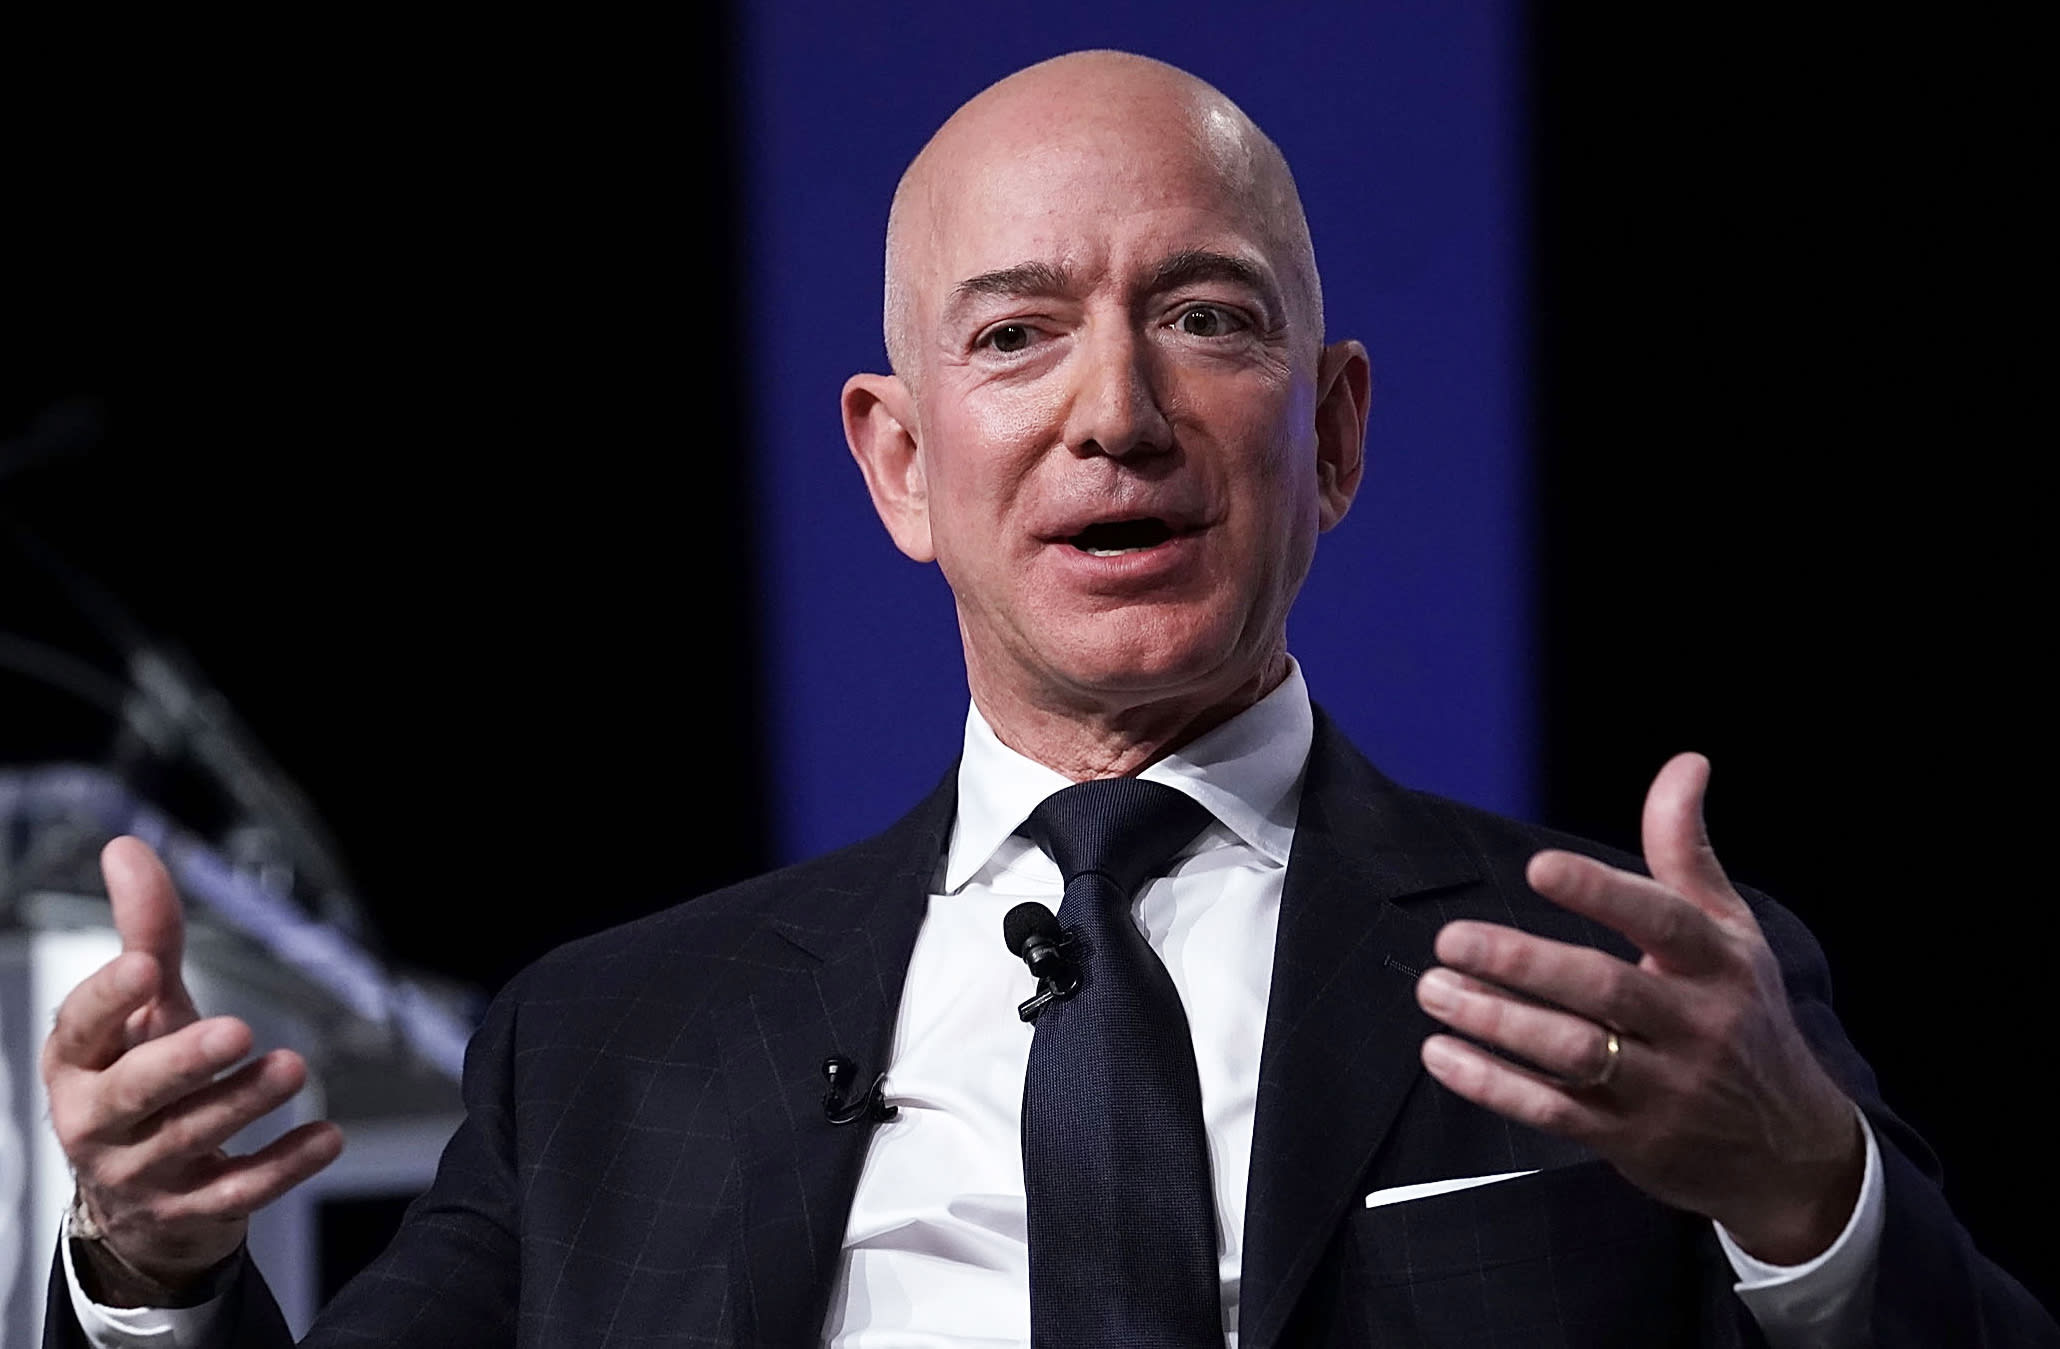 Jeff Bezos to employees: 'One day, Amazon will fail' but our job is to delay it as long as possible